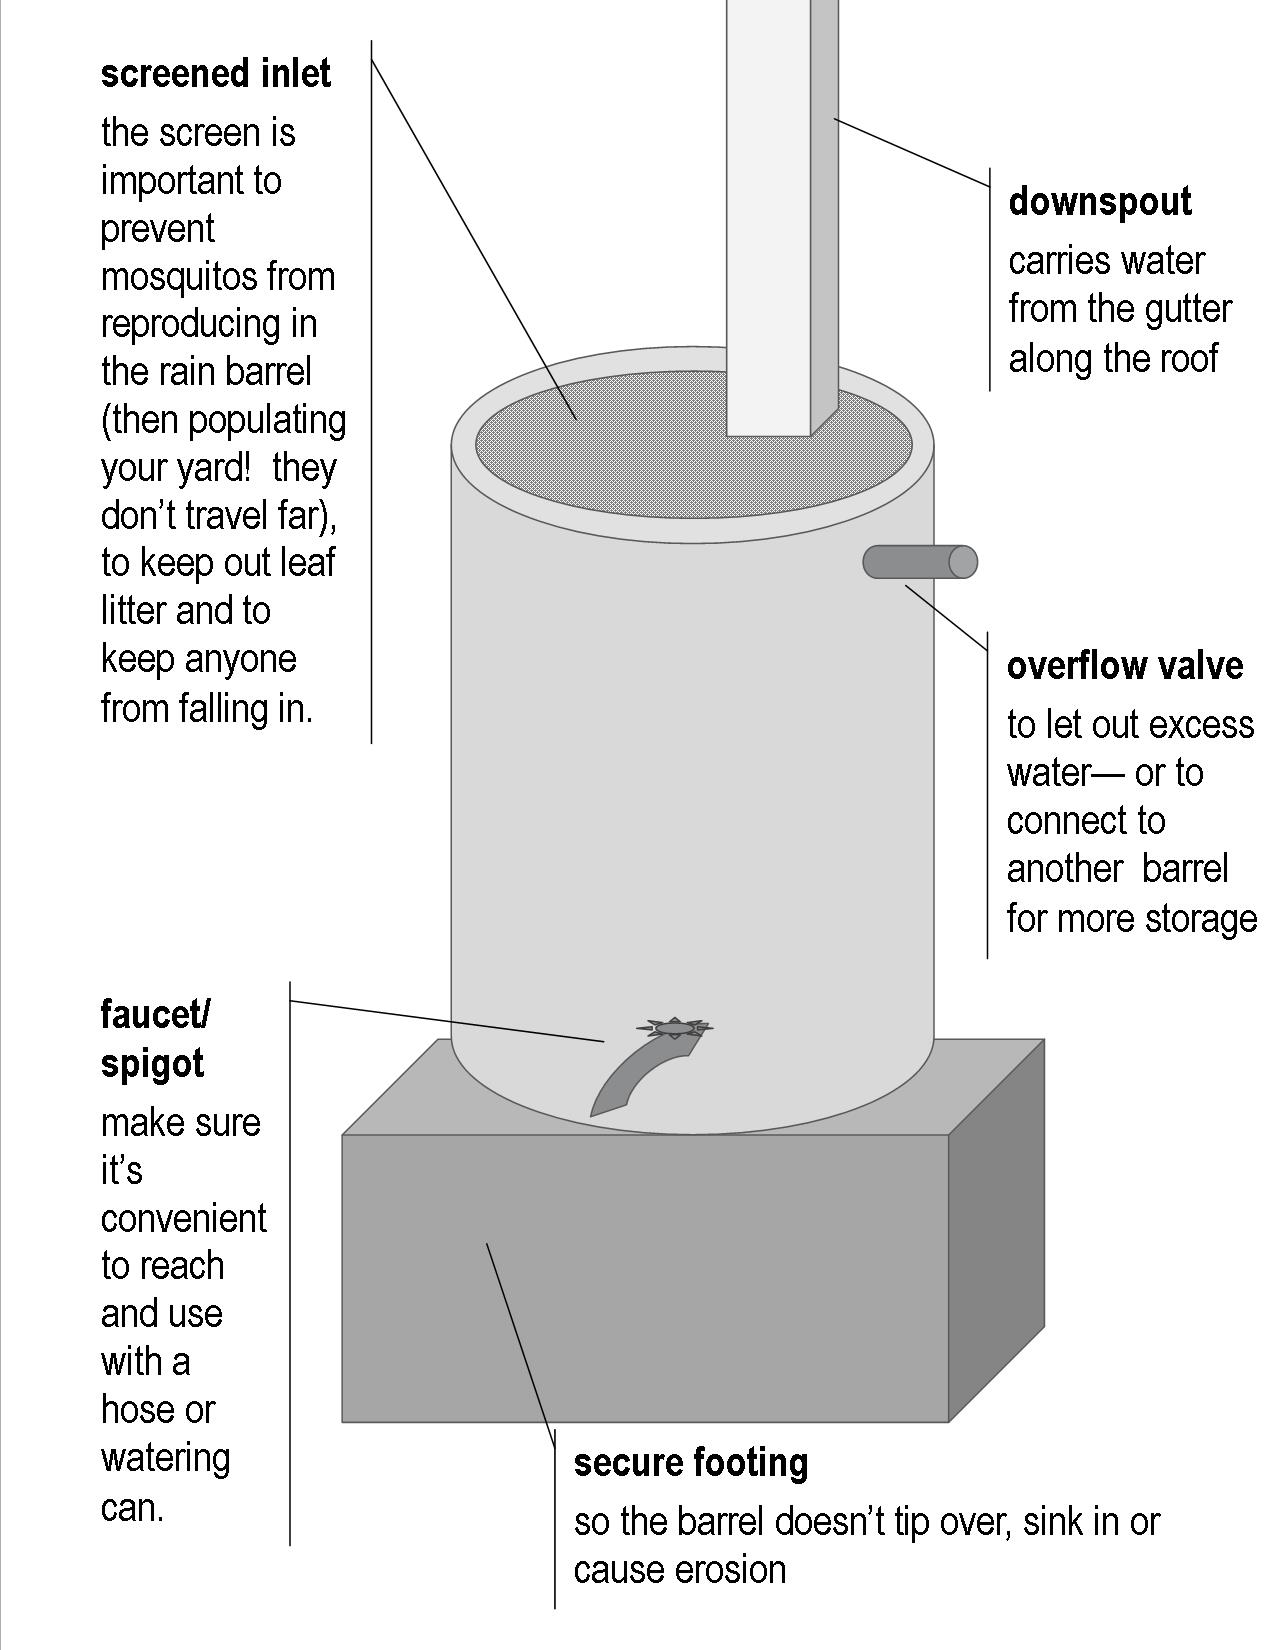 rain barrel anatomy animalia project